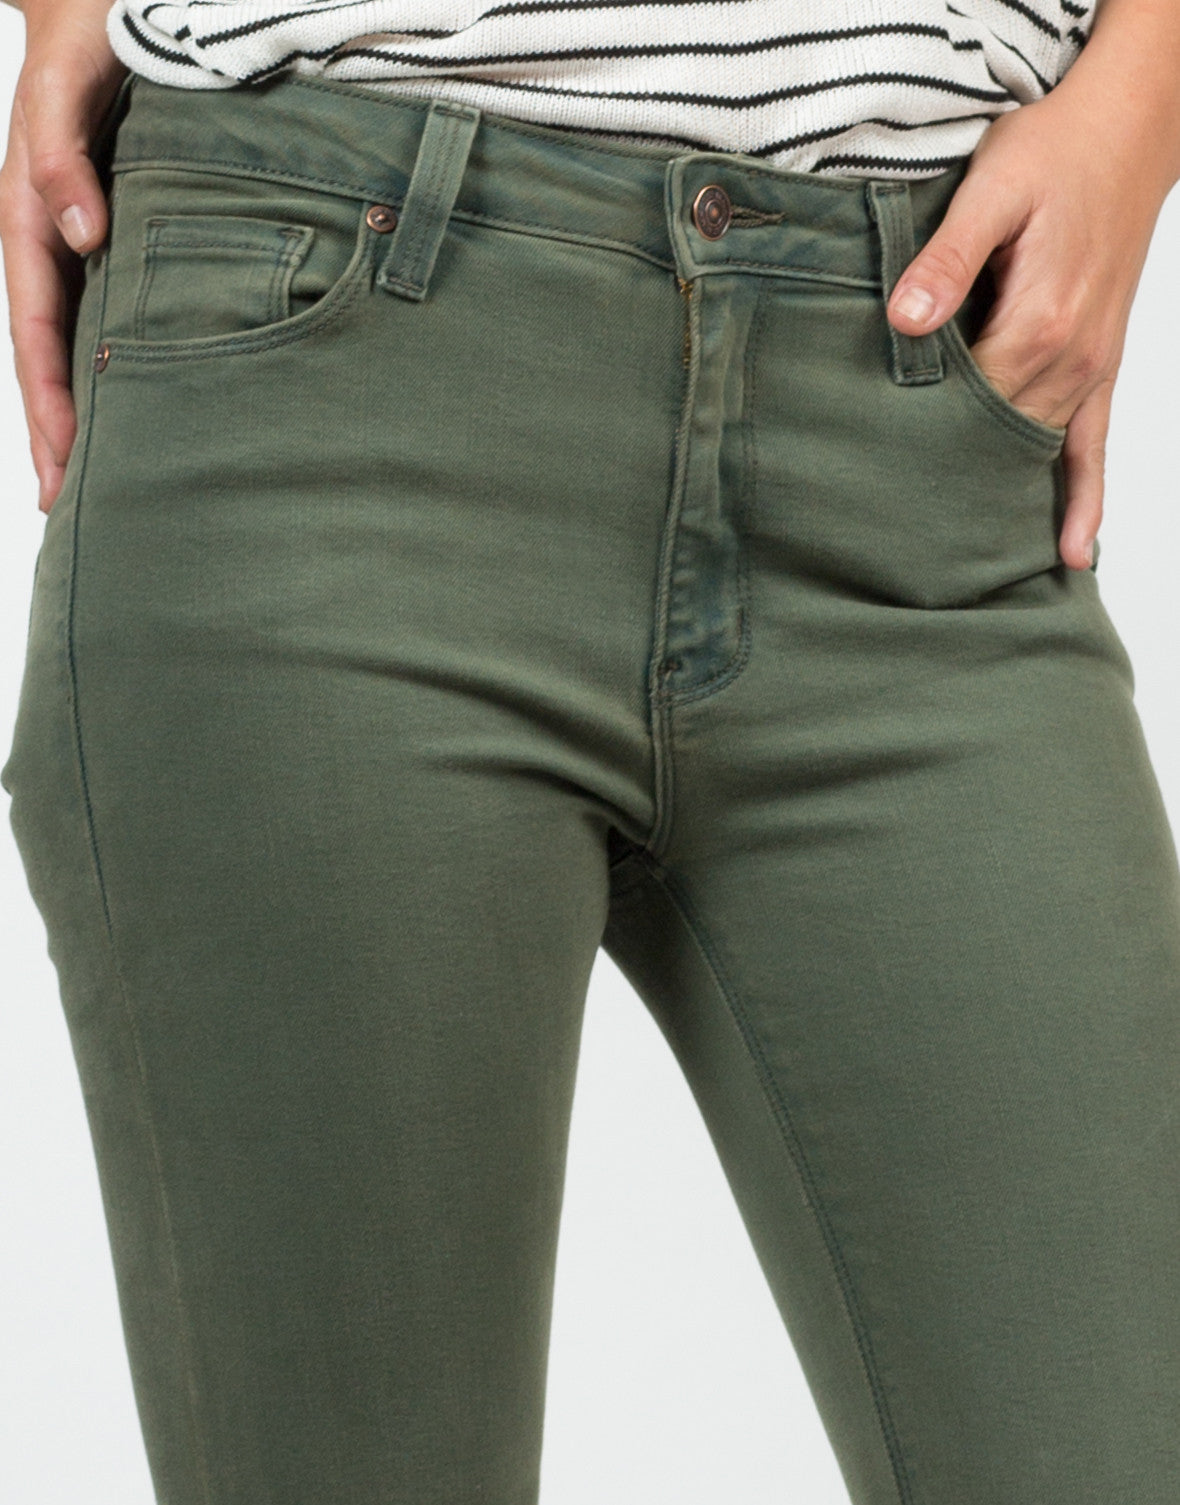 Detail of High Waisted Knee Slit Skinny Jeans